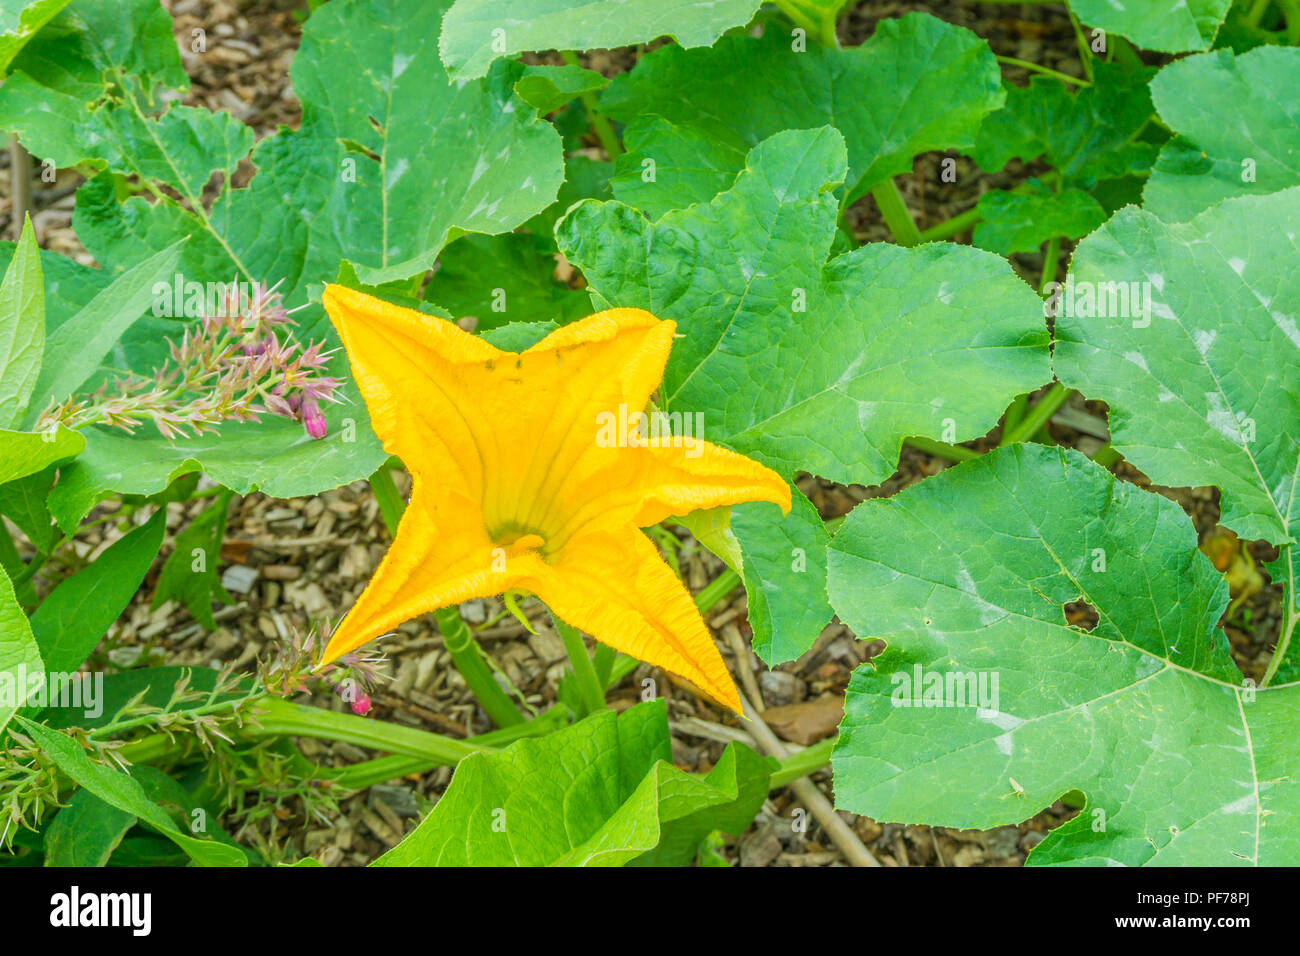 Big Yellow Flower On A Pumpkin Plant With Huge Leaves Stock Photo